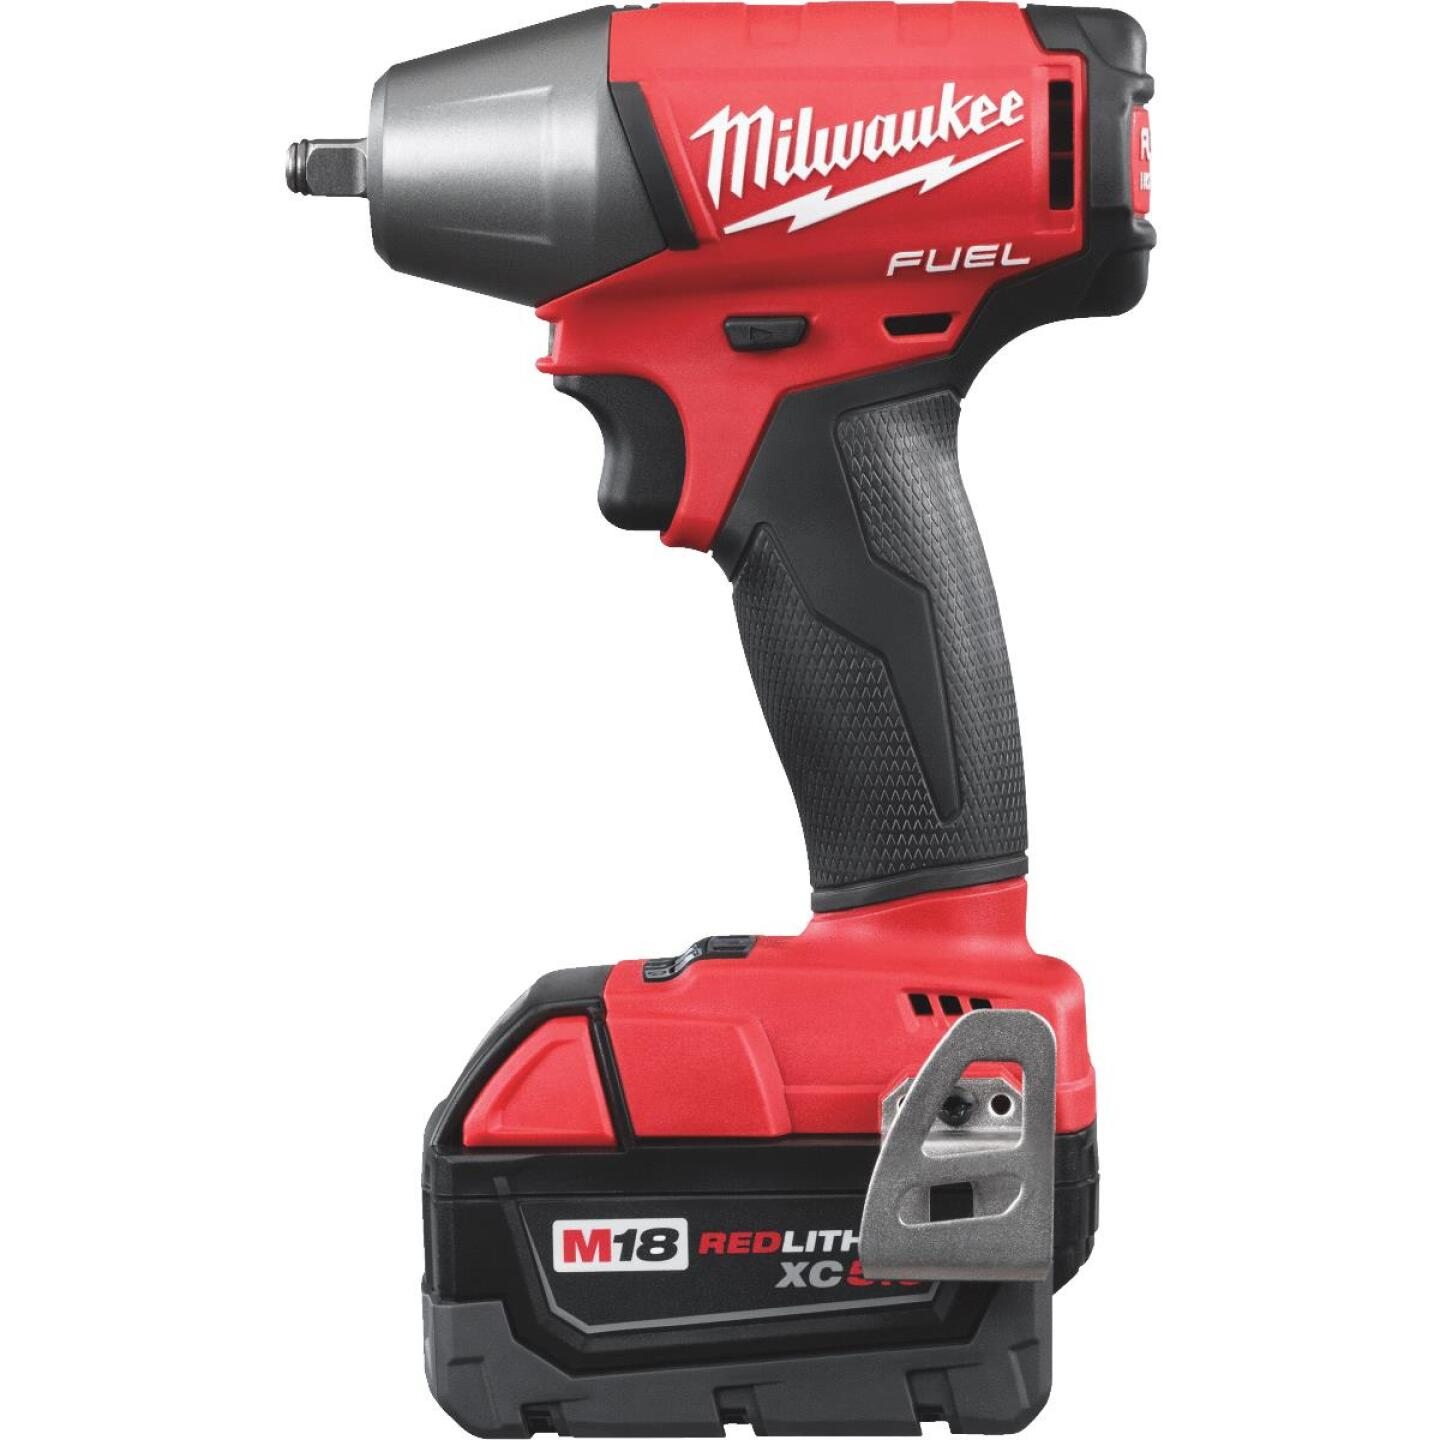 Milwaukee M18 FUEL 18 Volt Lithium-Ion Brushless 3/8 In. Compact Cordless Impact Wrench with Friction Ring Kit Image 4